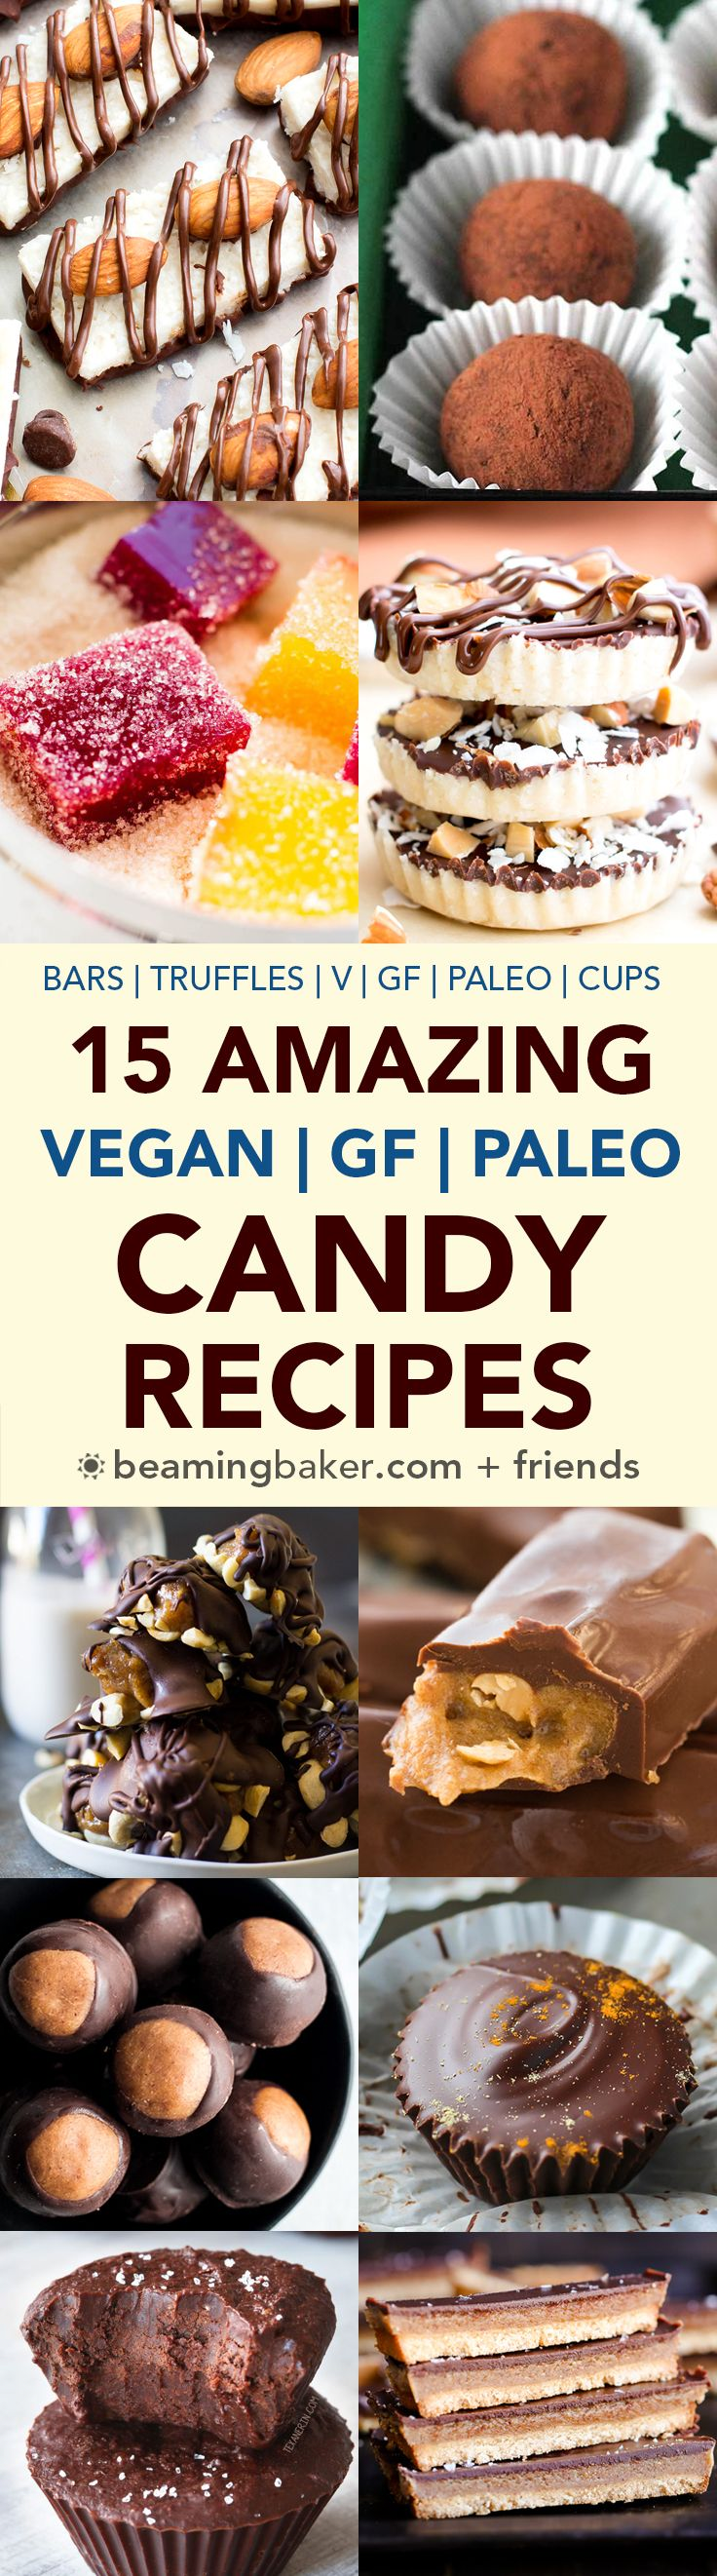 15 Amazing Paleo Gluten Free Vegan Candy Recipes: a sweet collection of 15 easy recipes for paleo, vegan, gluten-free recipes made with simple ingredients! #Paleo #Vegan #GlutenFree #DairyFree | BeamingBaker.com